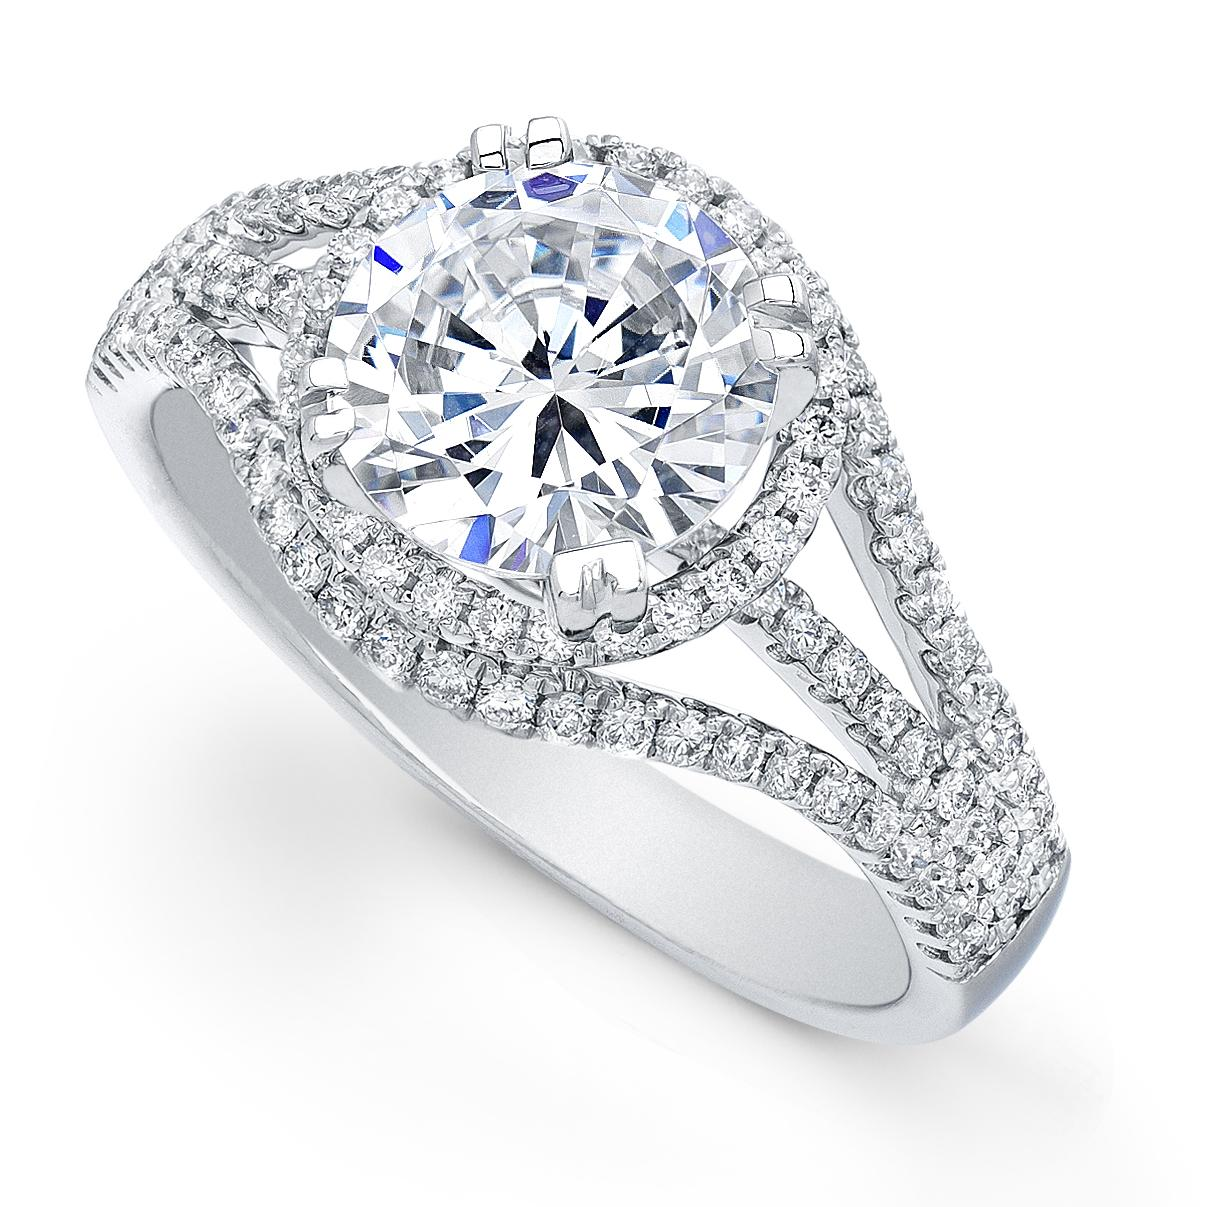 Engagement Ring Carat Weight: